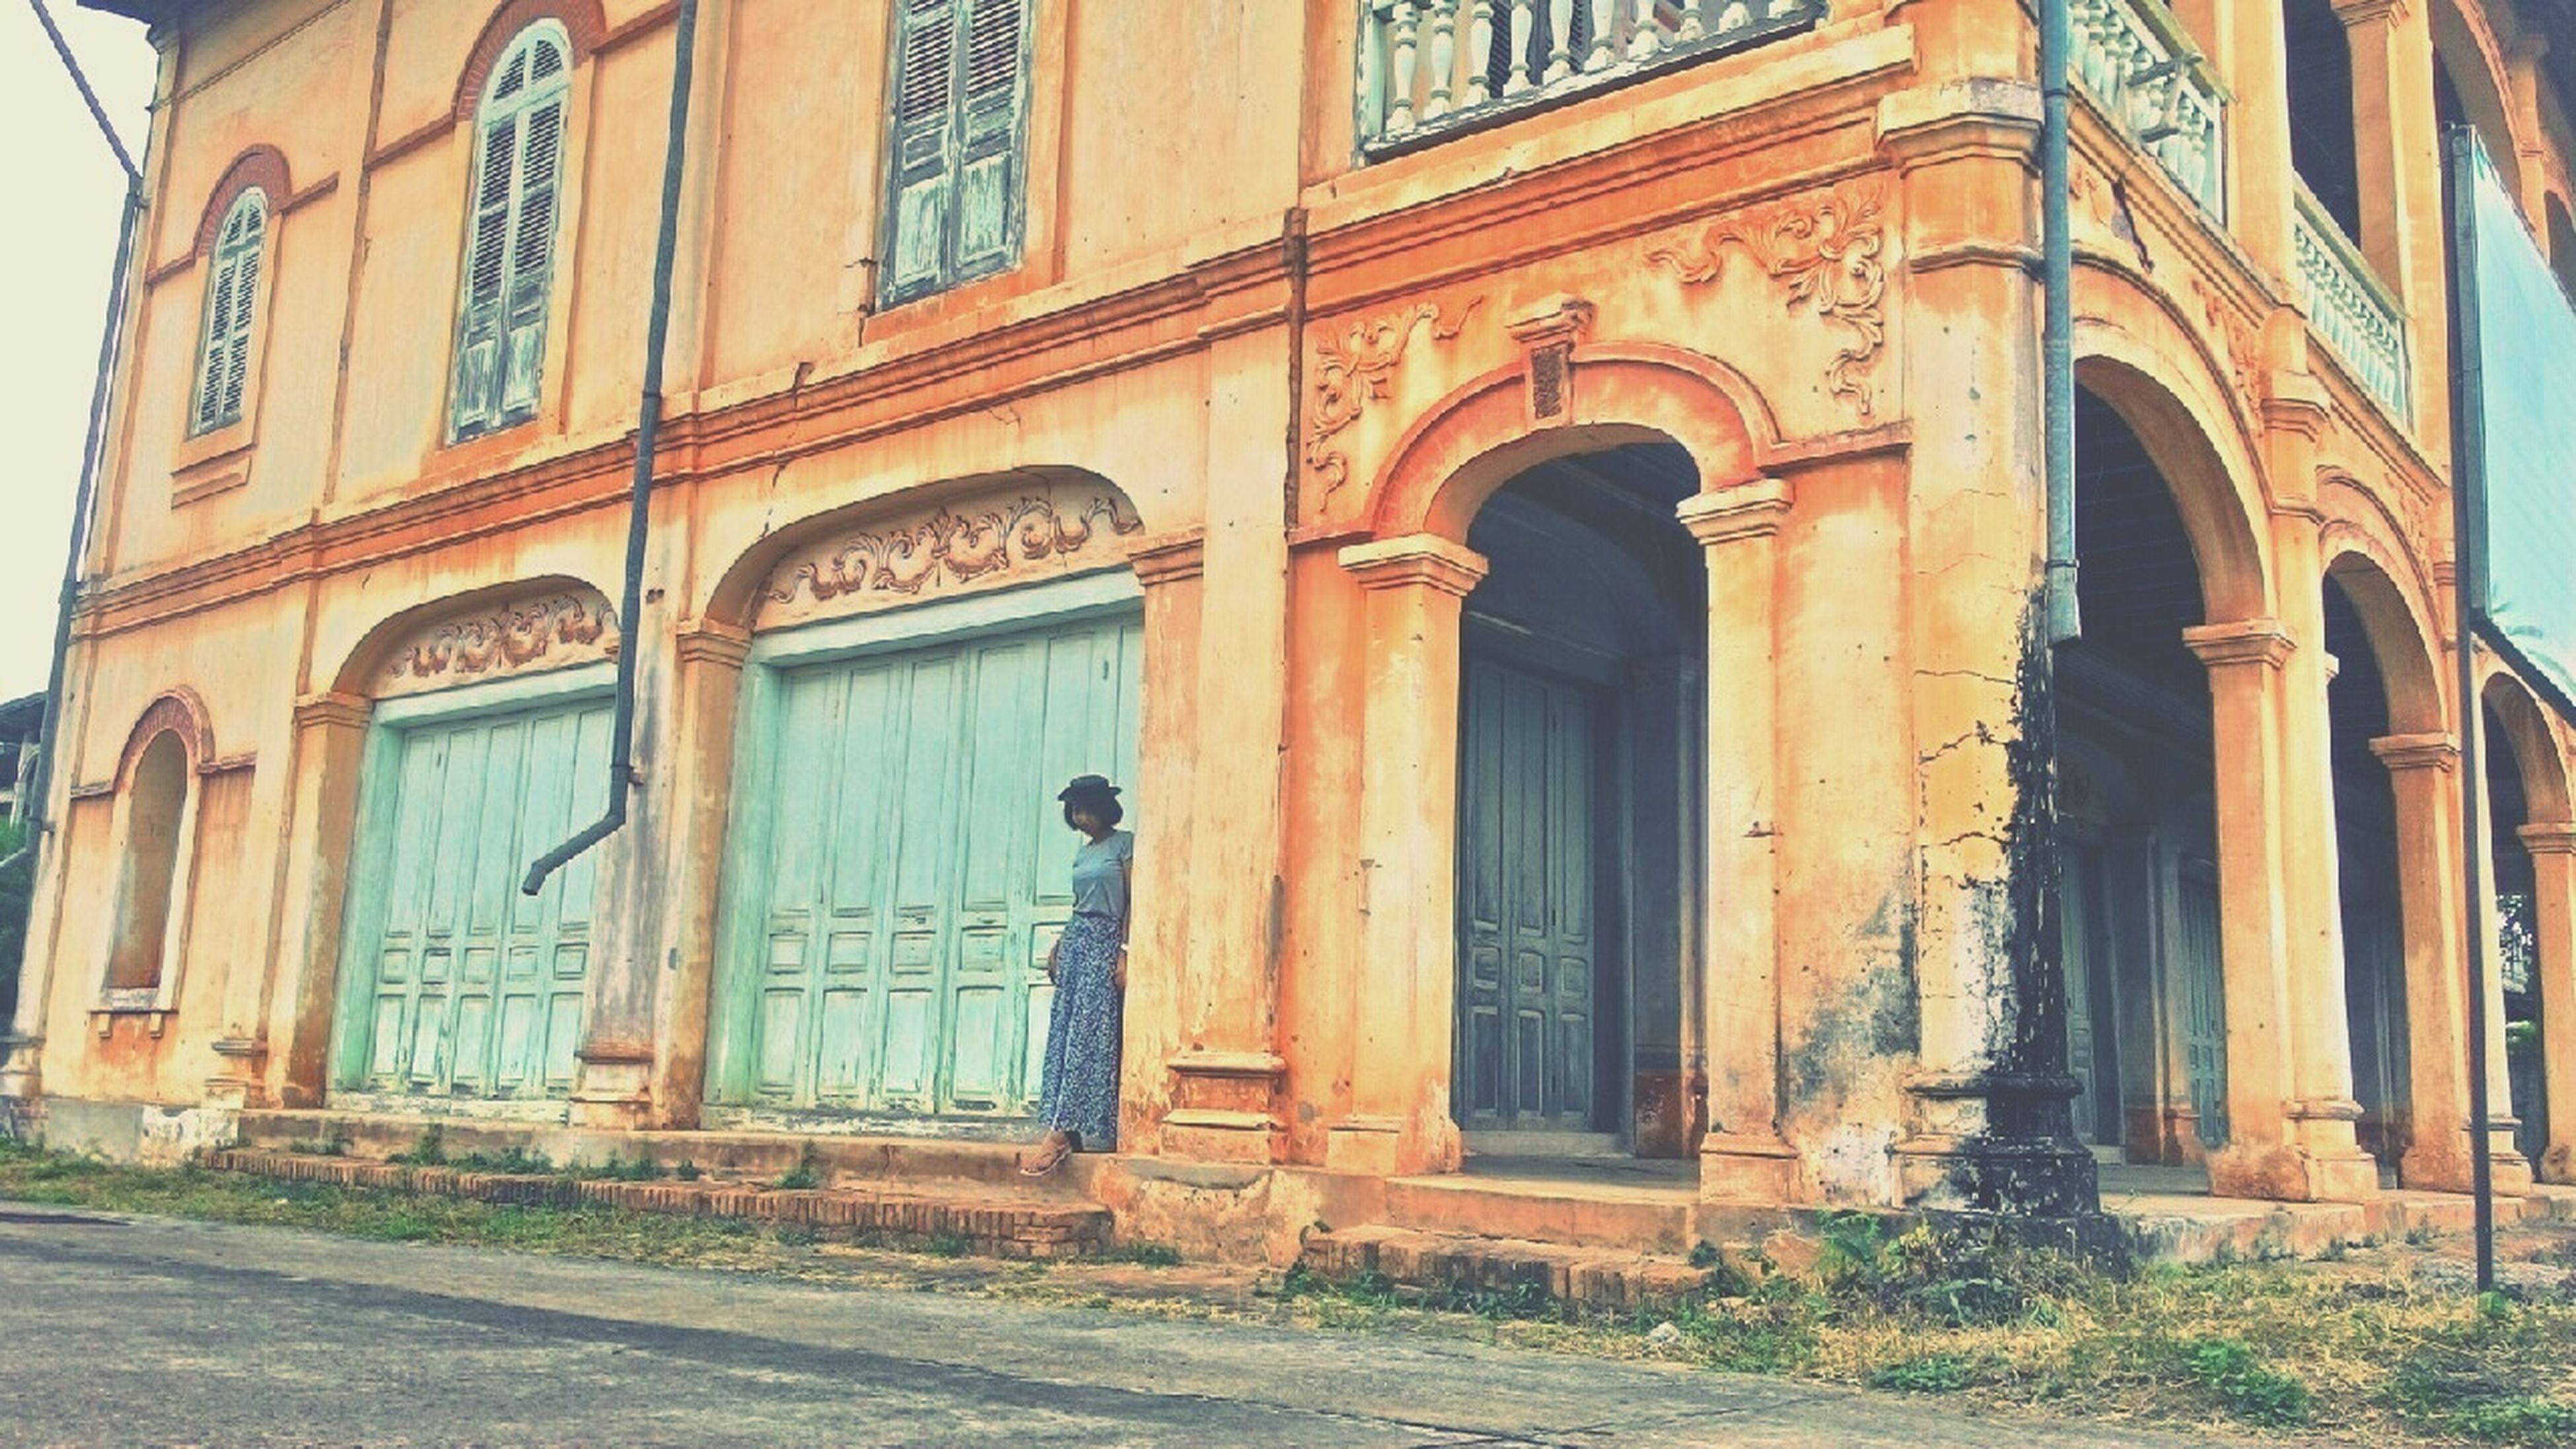 architecture, building exterior, built structure, window, arch, door, facade, closed, entrance, house, building, residential structure, residential building, outdoors, old, day, no people, exterior, low angle view, doorway